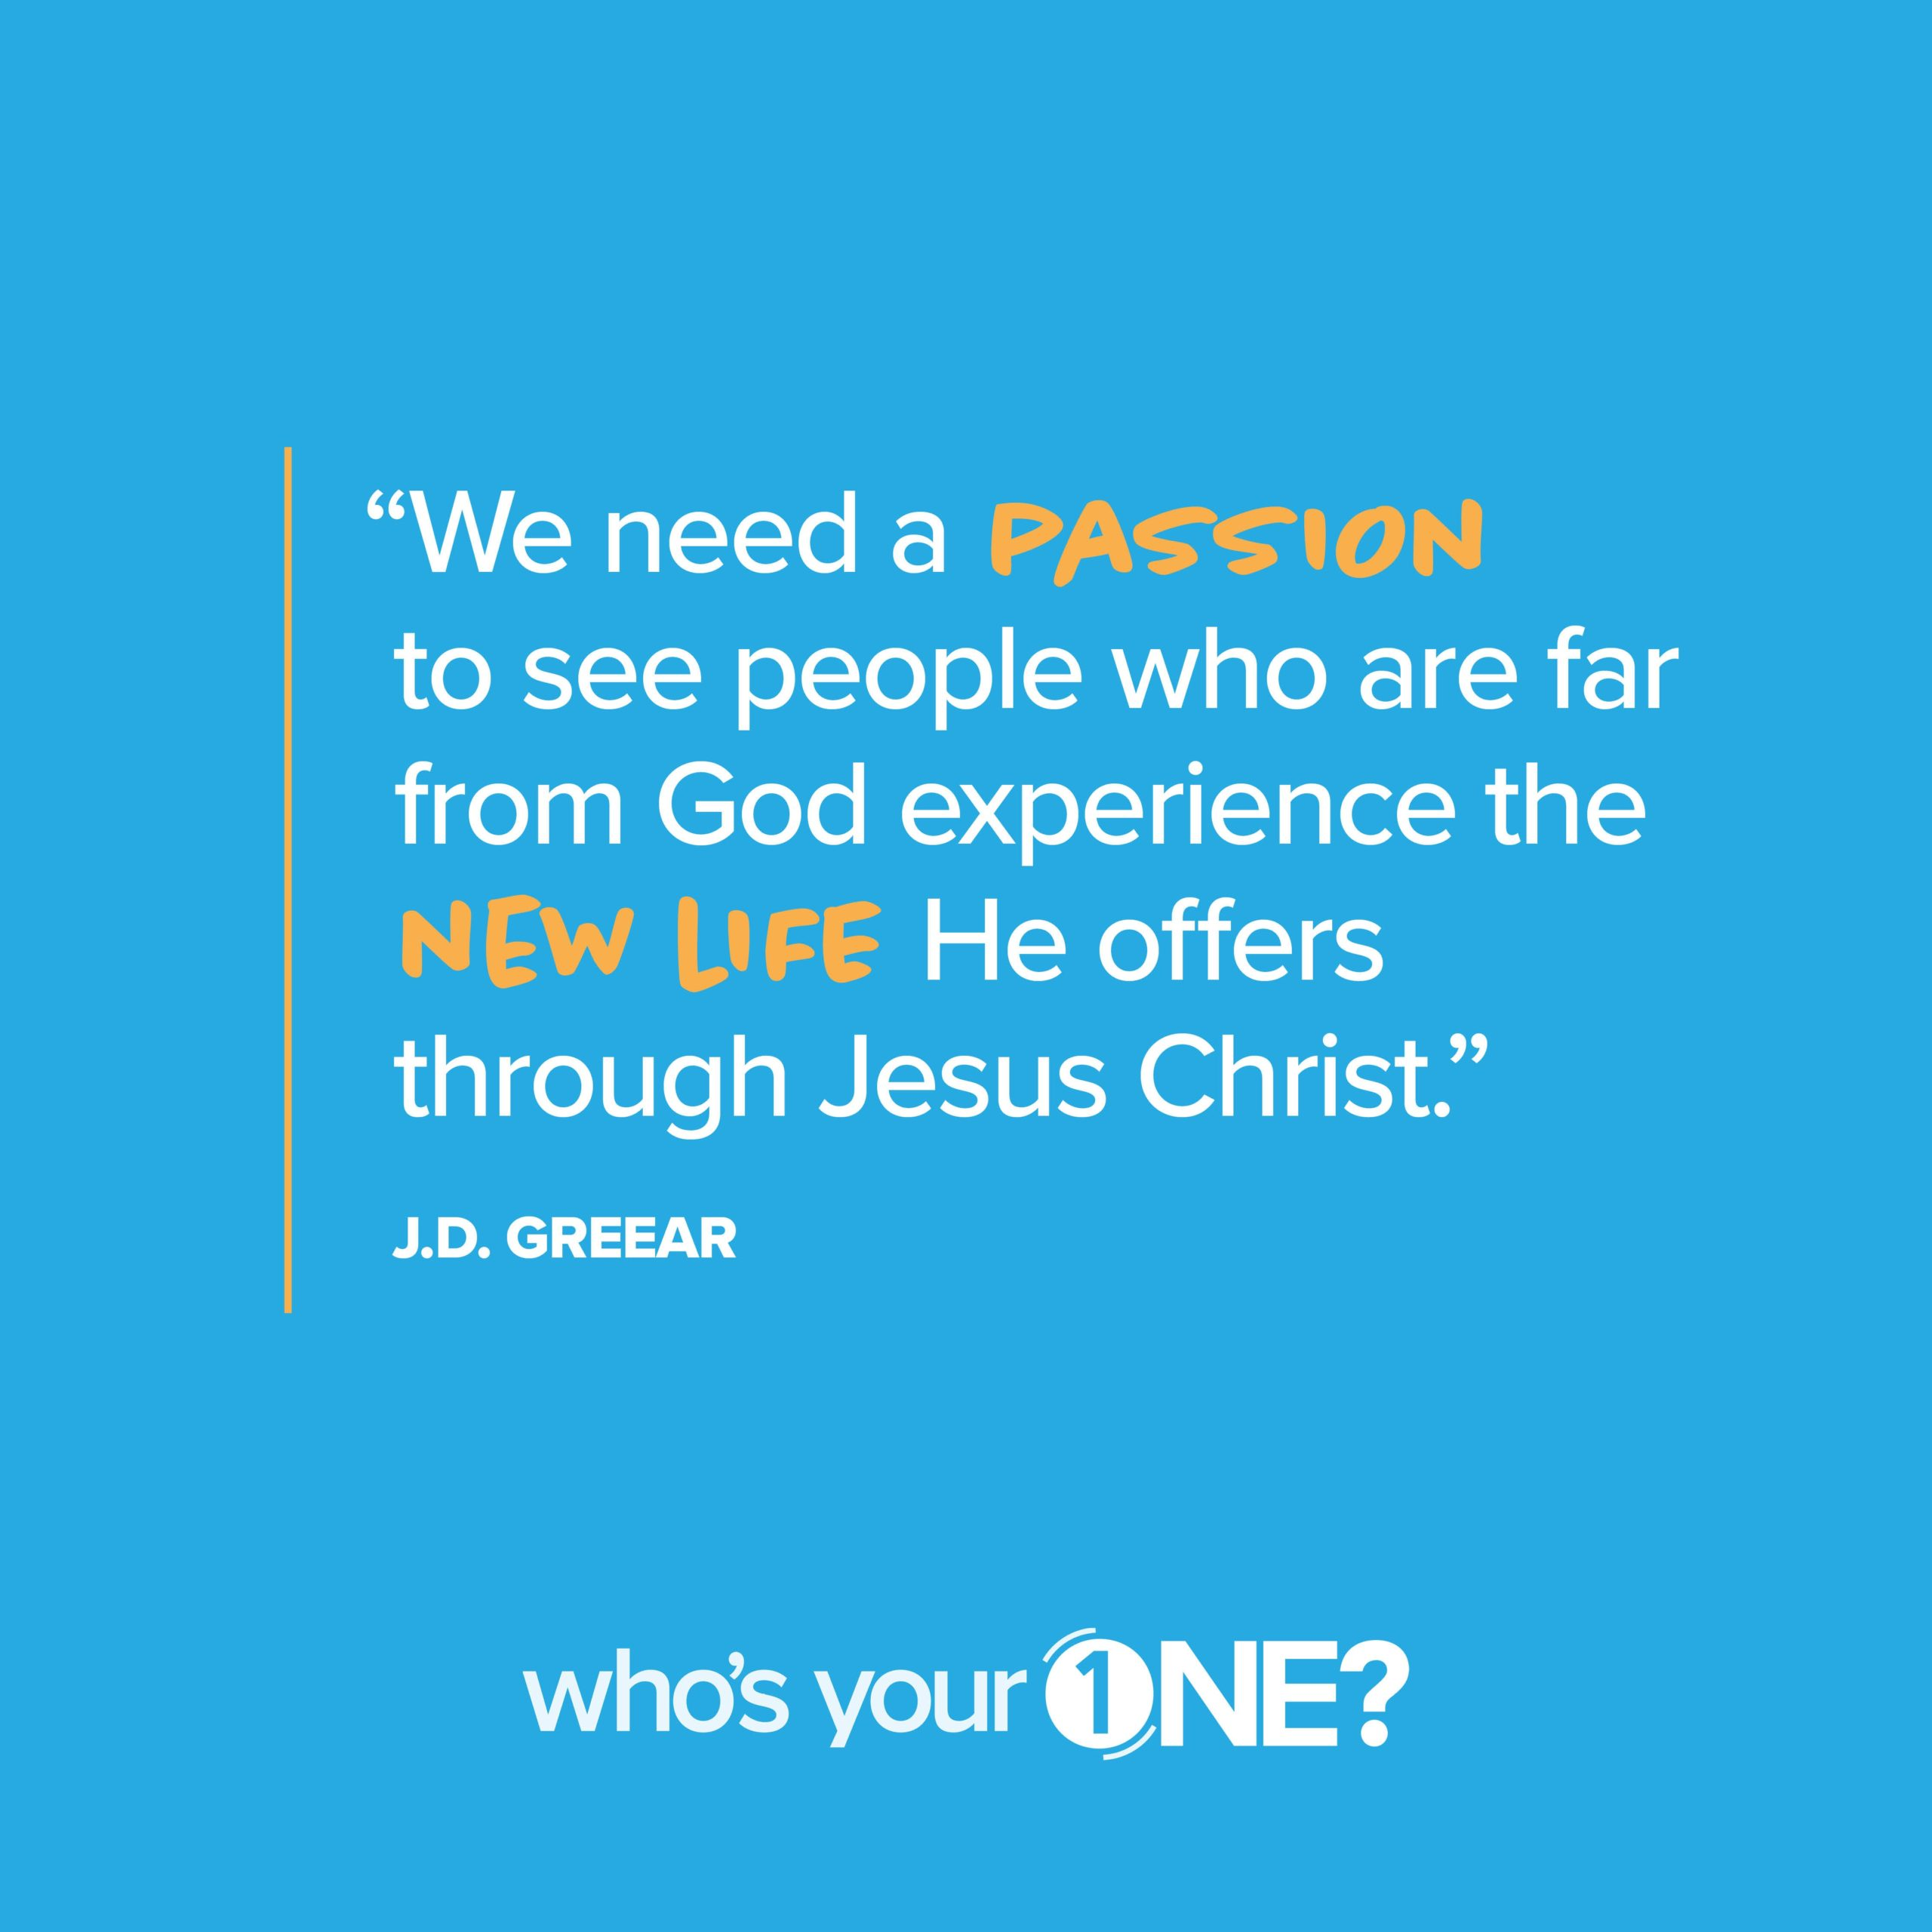 We need a passion to see people who are far from God experience the new life He offers through Jesus Christ. J.D. Greear #WhosYour1